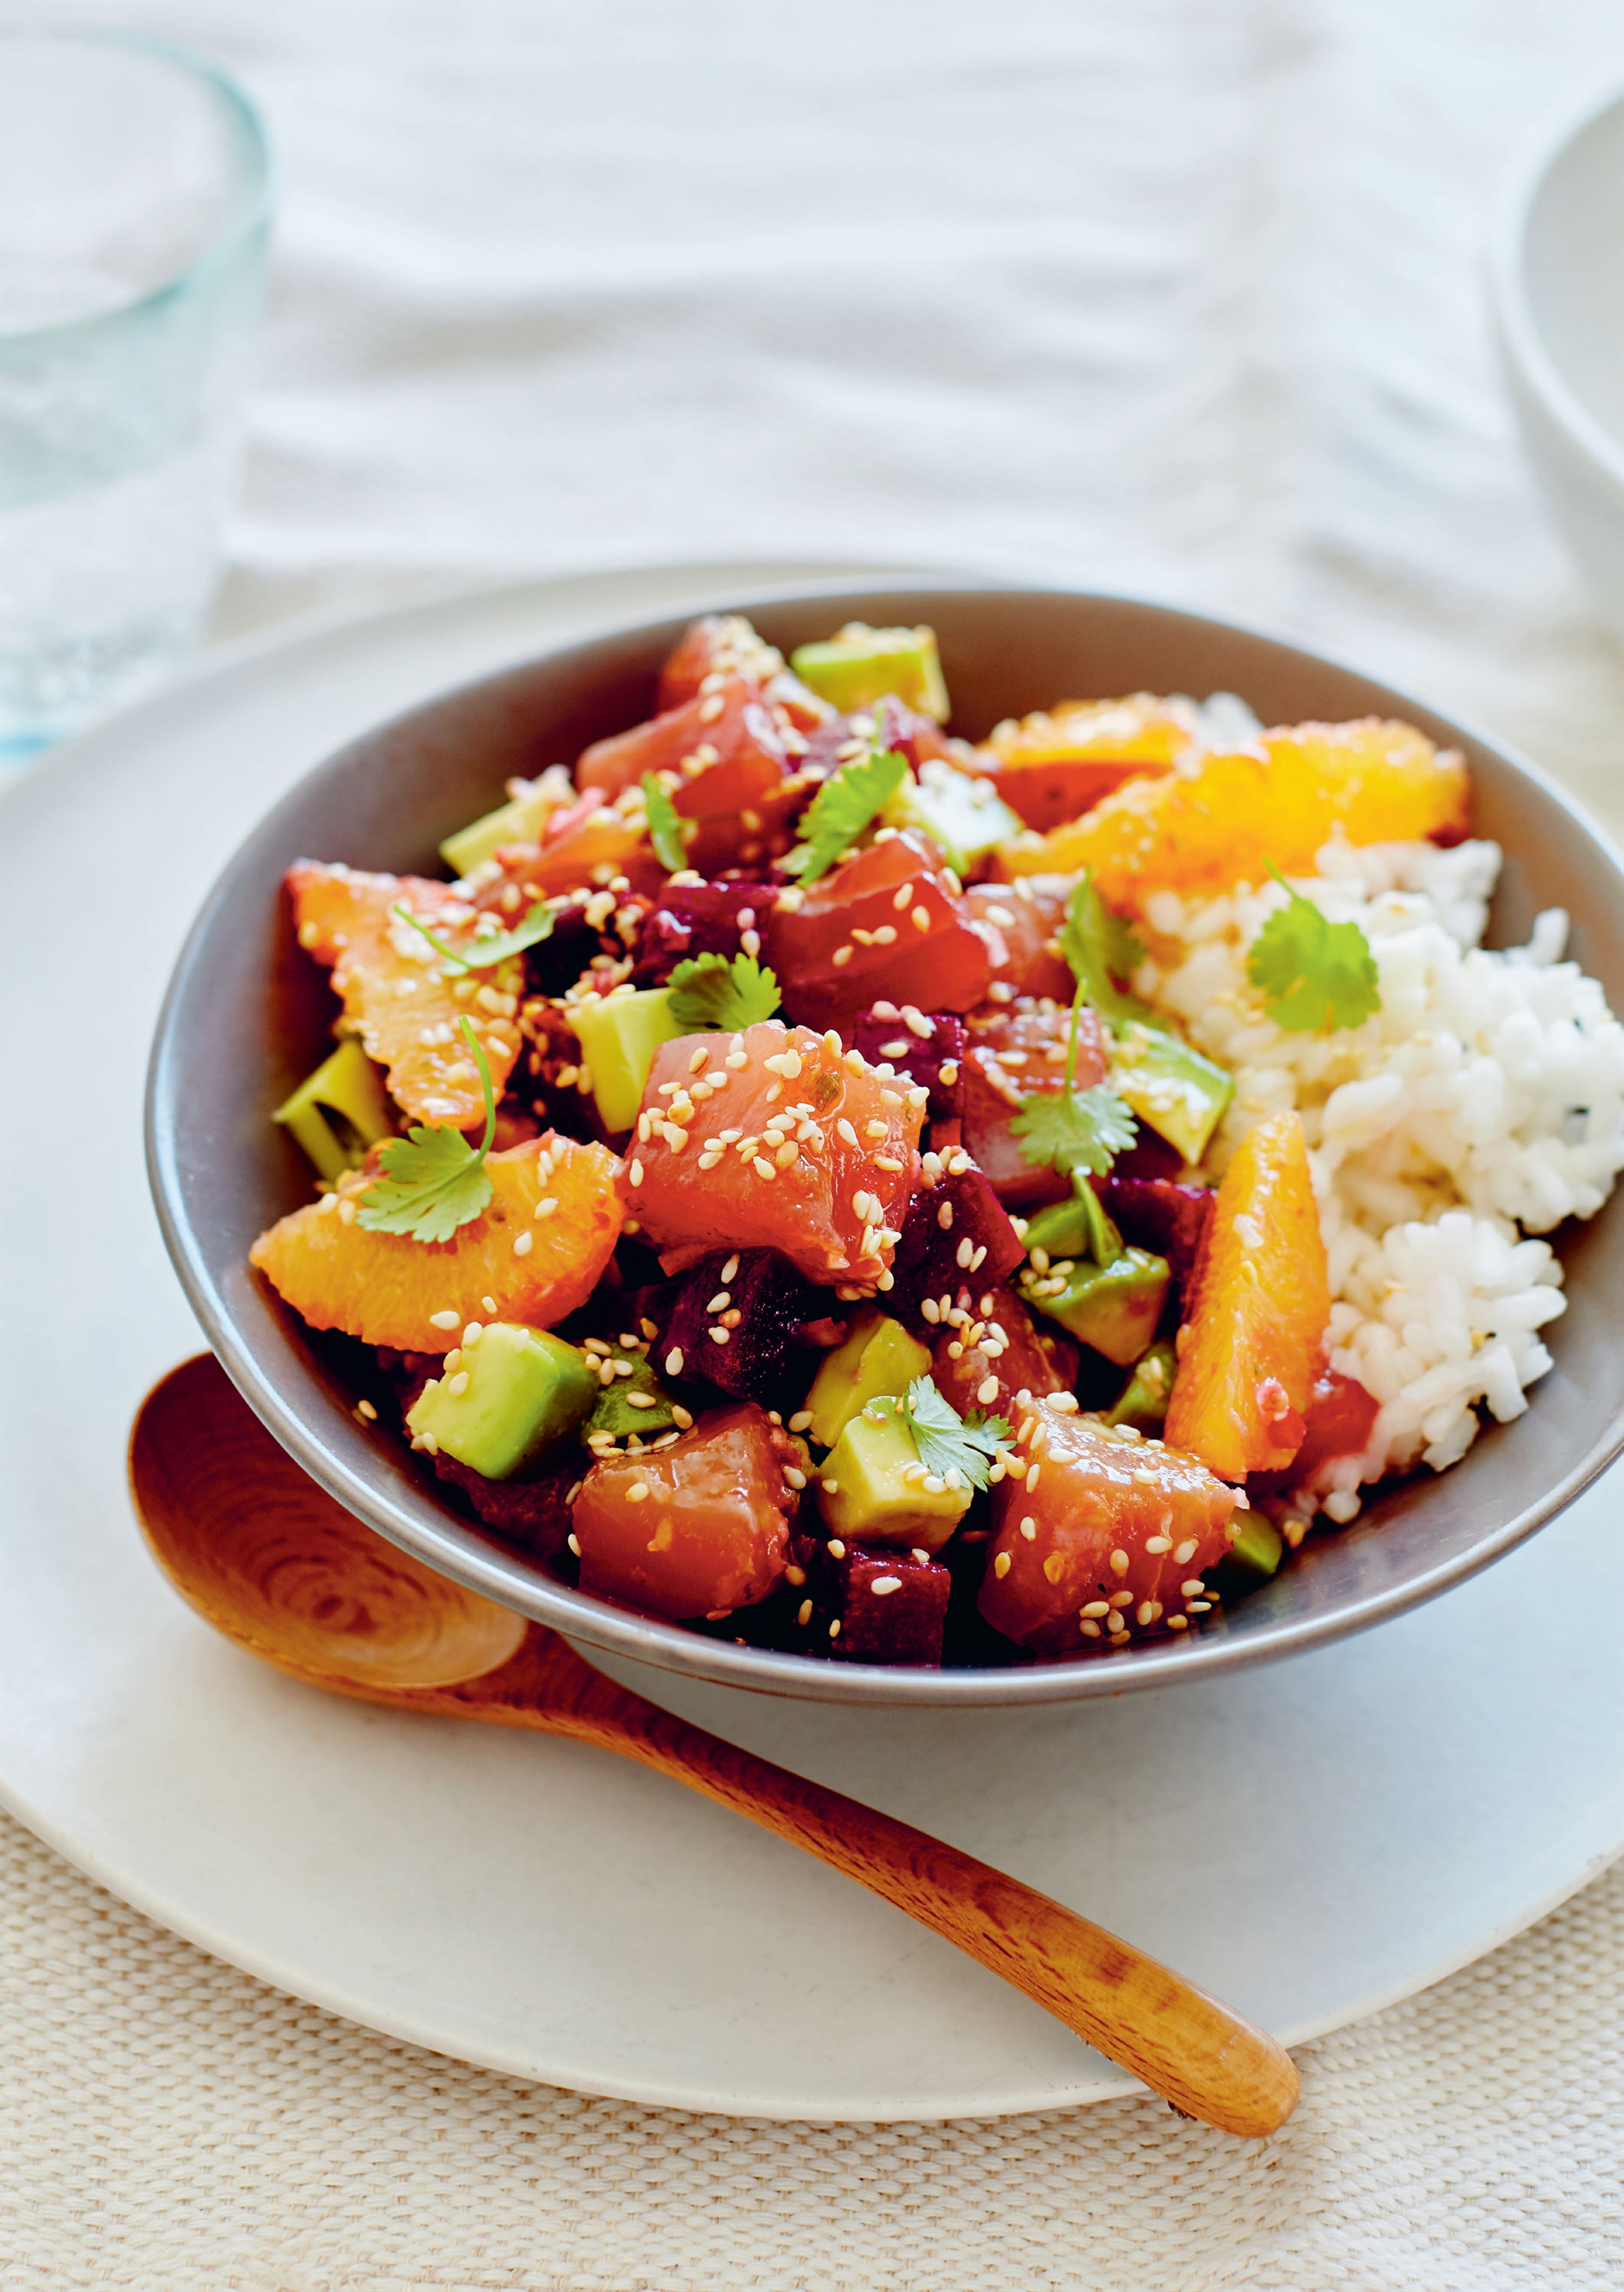 Tuna, orange and beetroot poke